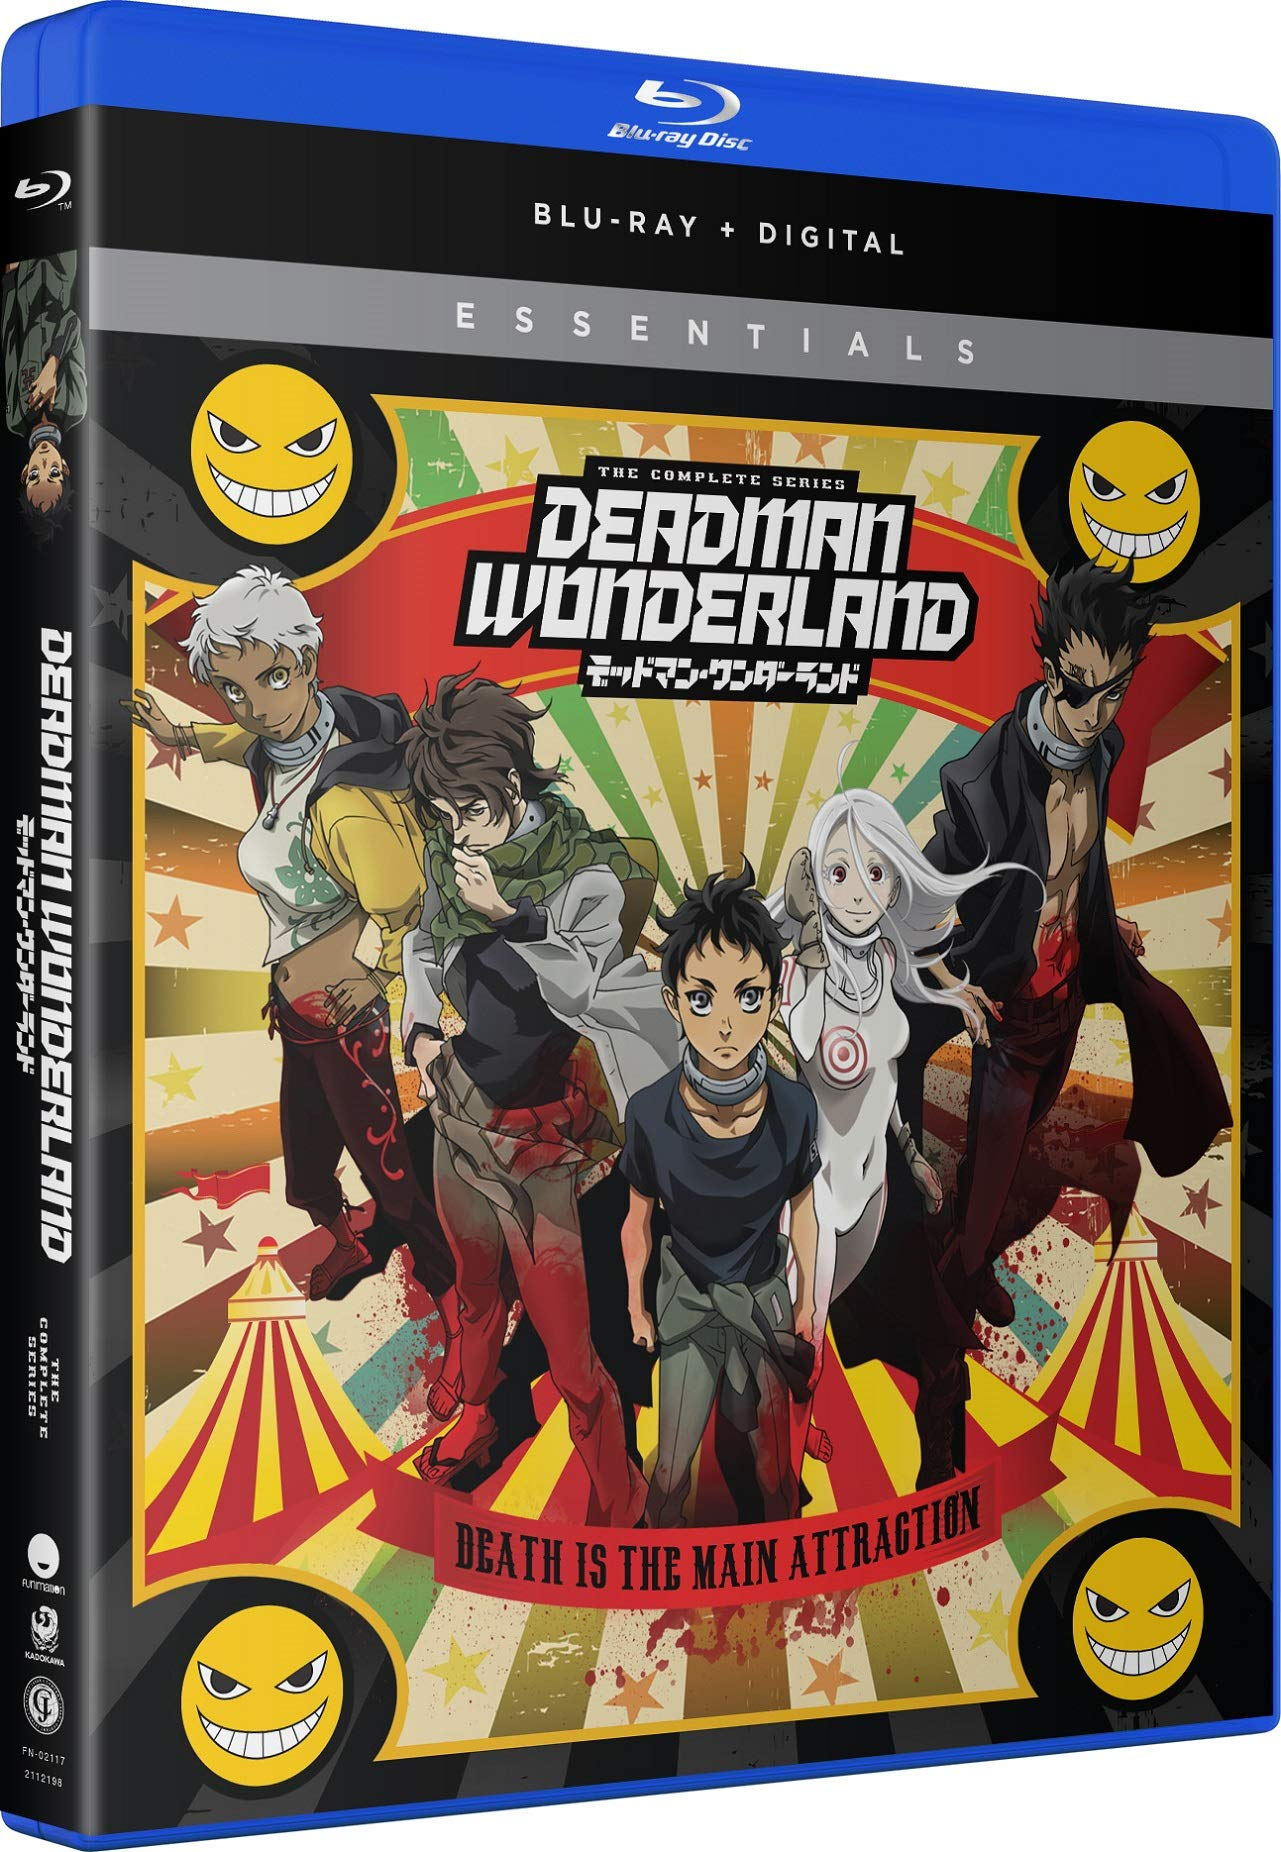 Blu-ray : Deadman Wonderland: The Complete Series (Subtitled, 2 Pack, Digitally Mastered in HD)